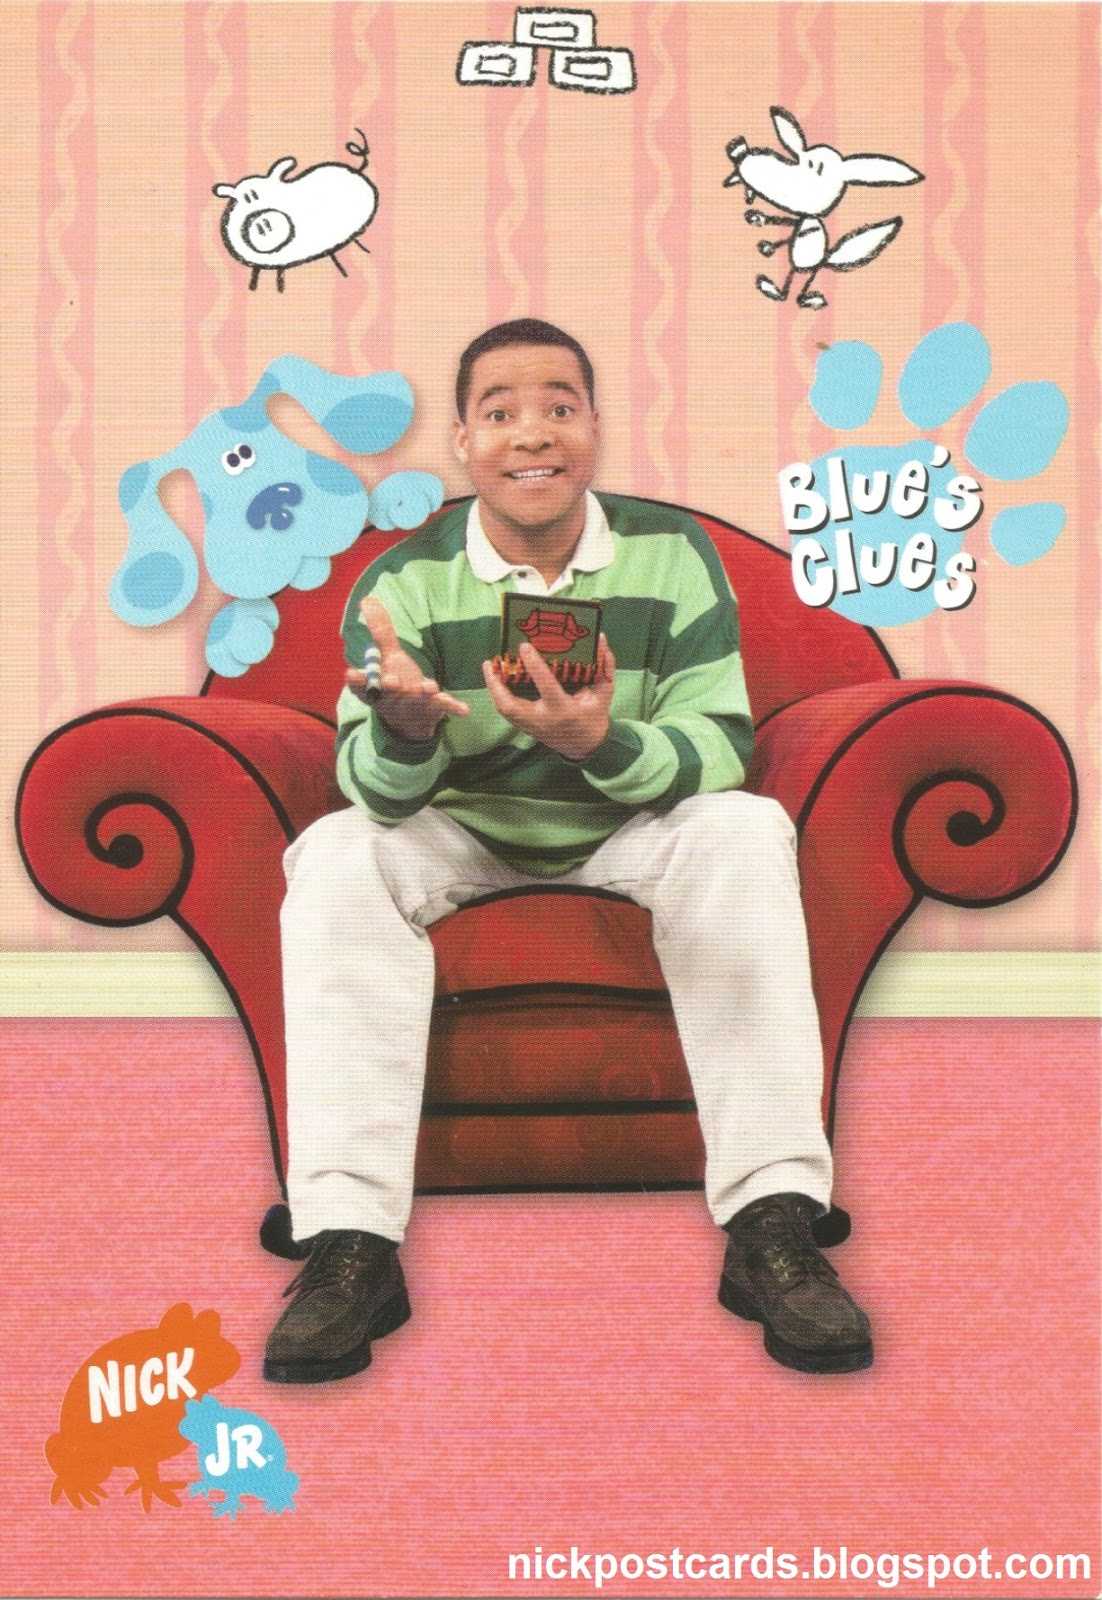 theories on blue s clues A few weeks ago, i was bedridden with a fever and could do nothing but watch old shows on cable blue's clues was on the theme of that episode was safety they had.